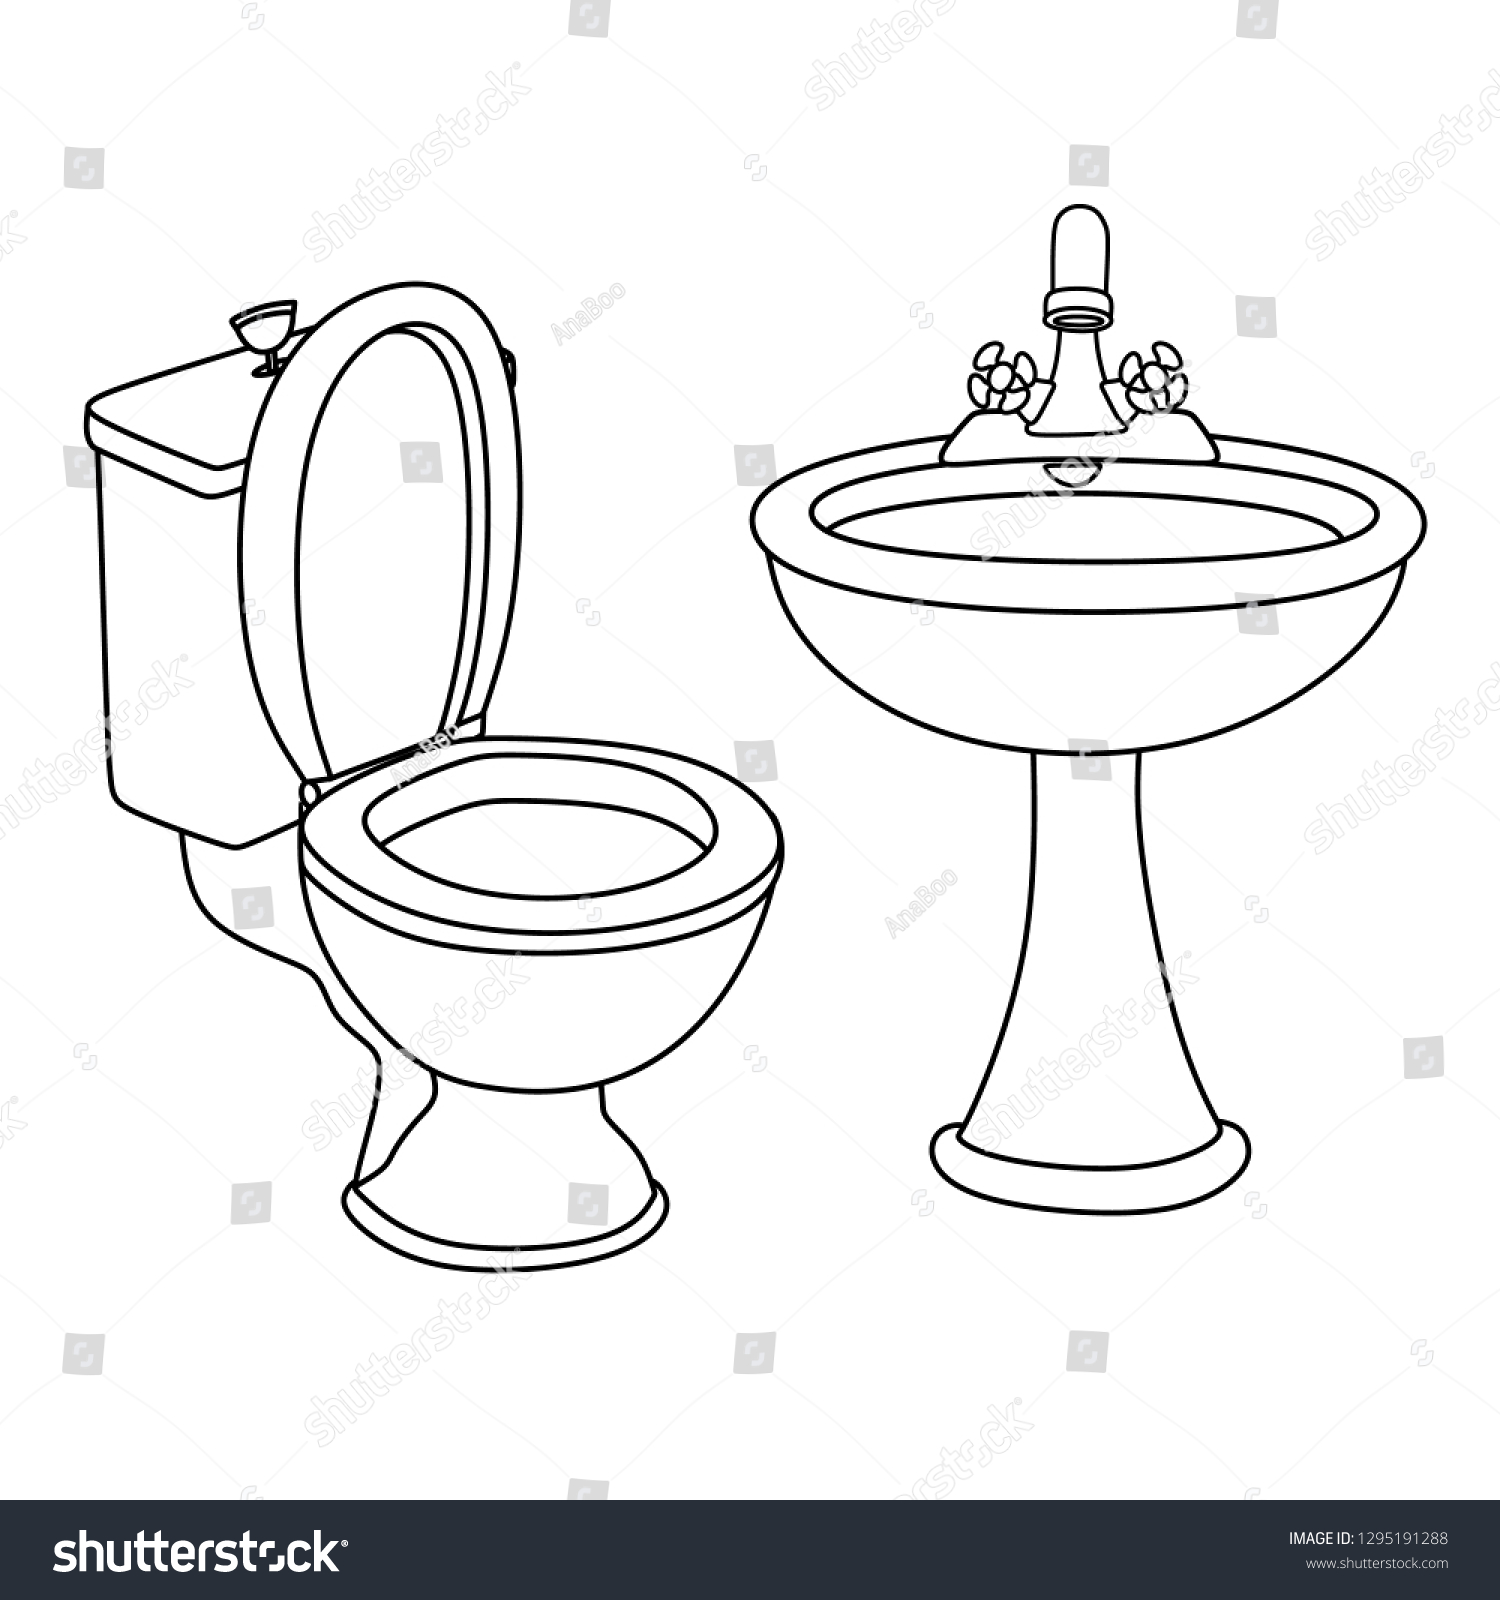 Sink Coloring Page - Ultra Coloring Pages | 1600x1500